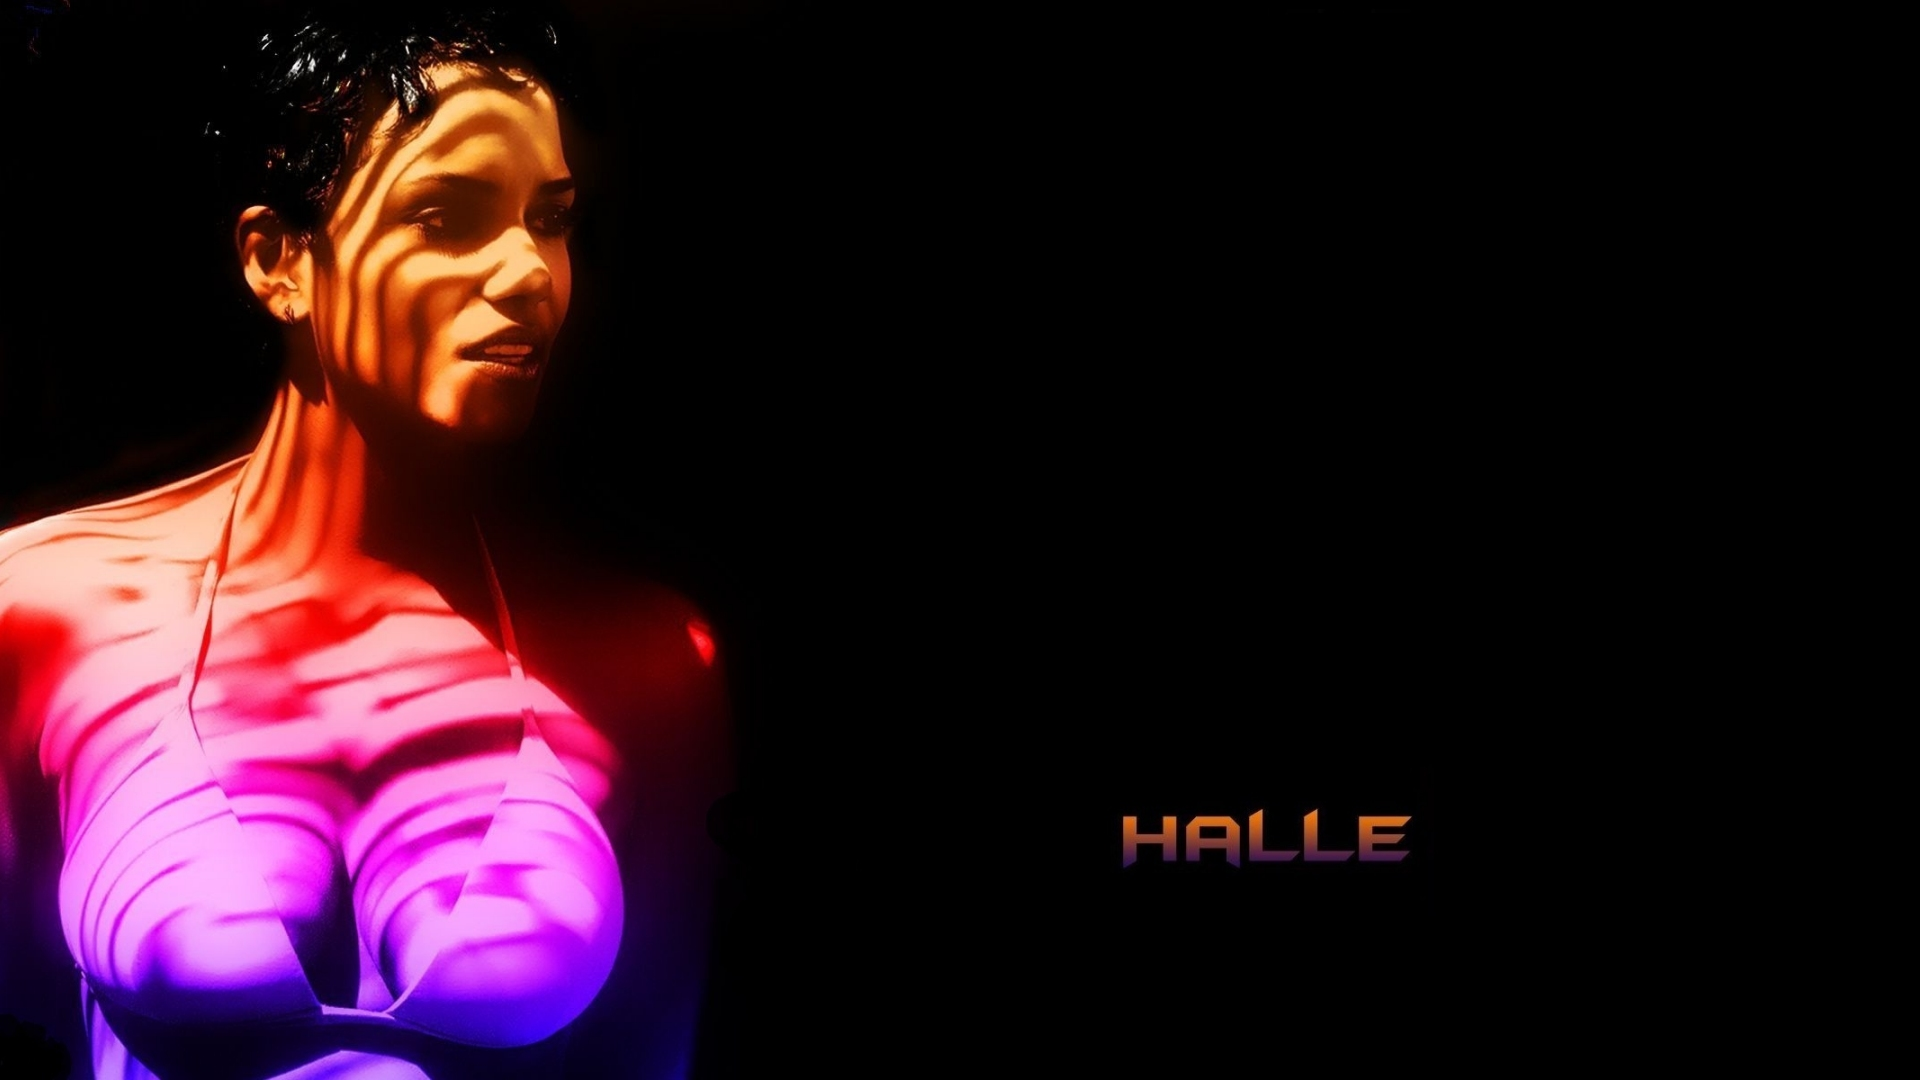 halle berry wallpapers 1920 - photo #19